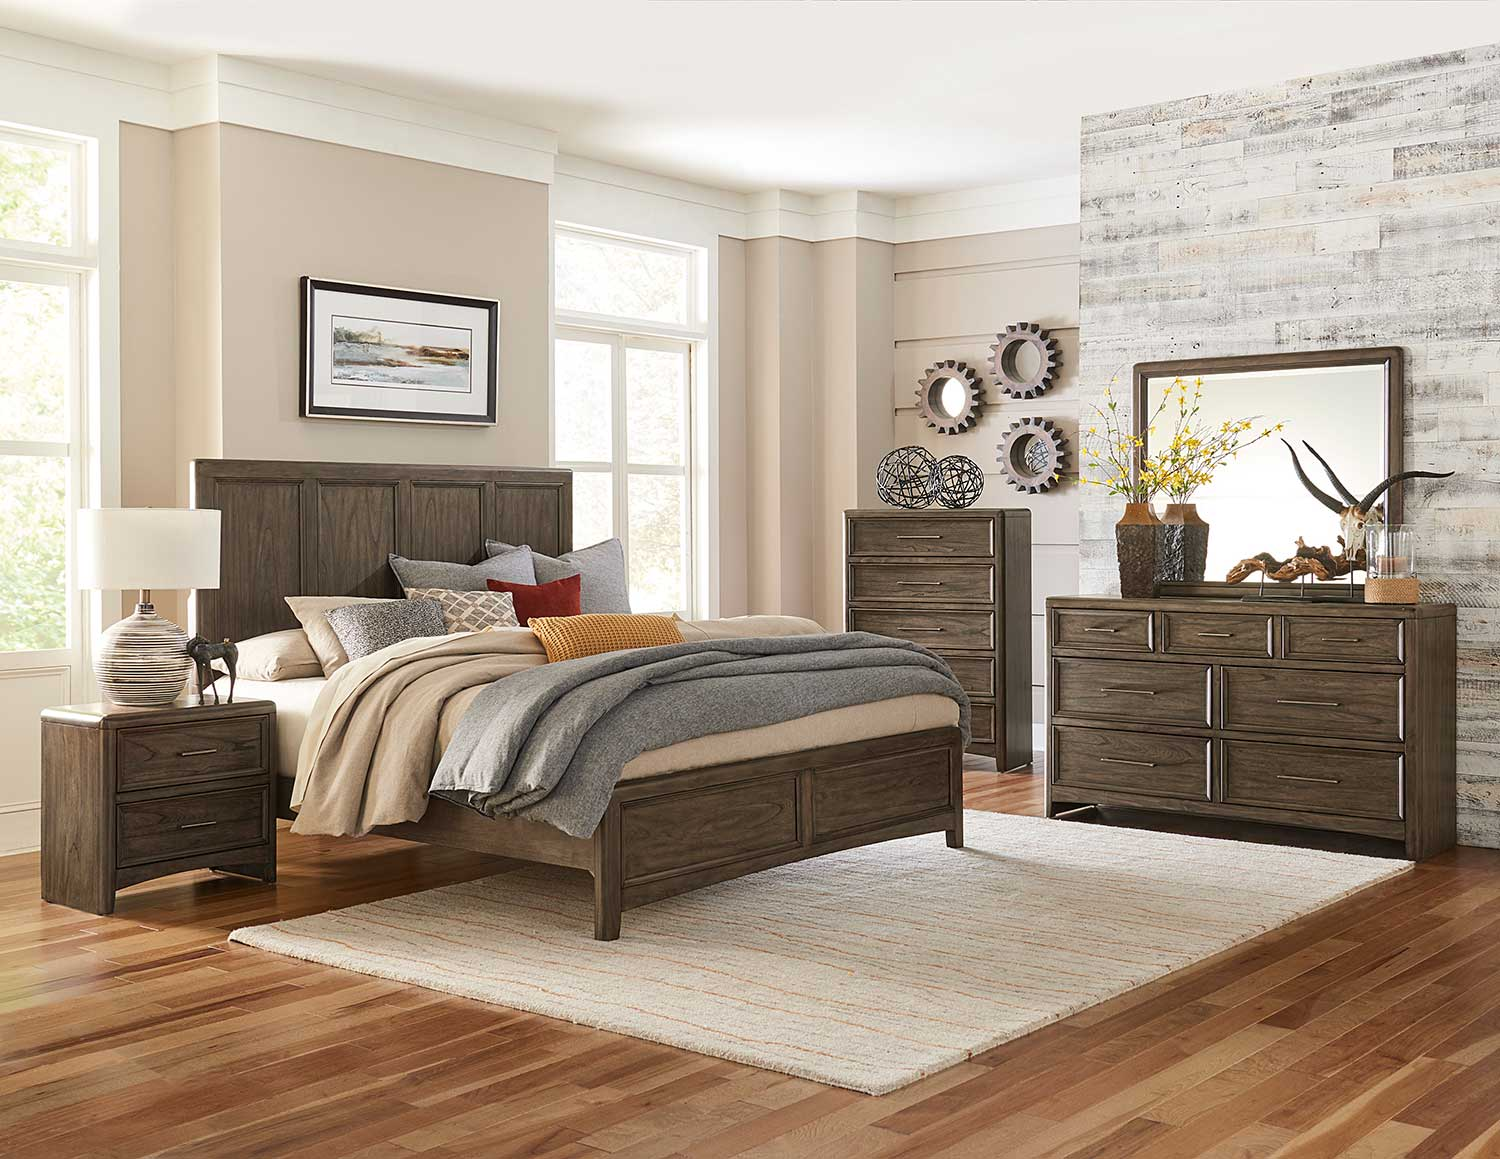 Homelegance Seldovia Bedroom Set - Brown Gray